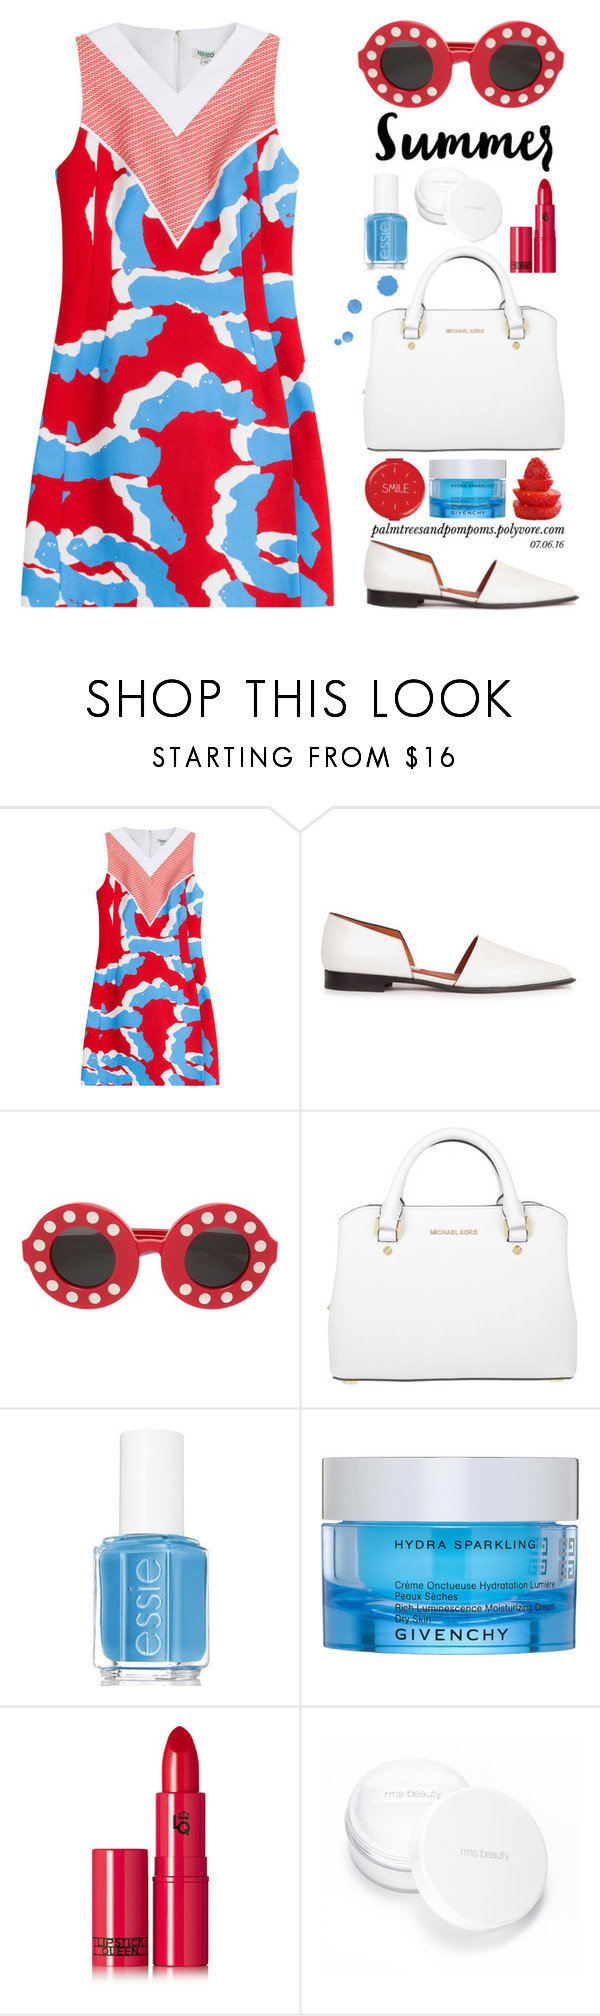 """07.06.16"" by palmtreesandpompoms ❤ liked on Polyvore featuring Kenzo, Acne Studios, Linda Farrow, Michael Kors, Essie, Givenchy, Lipstick Queen, rms beauty and Wild & Wolf"